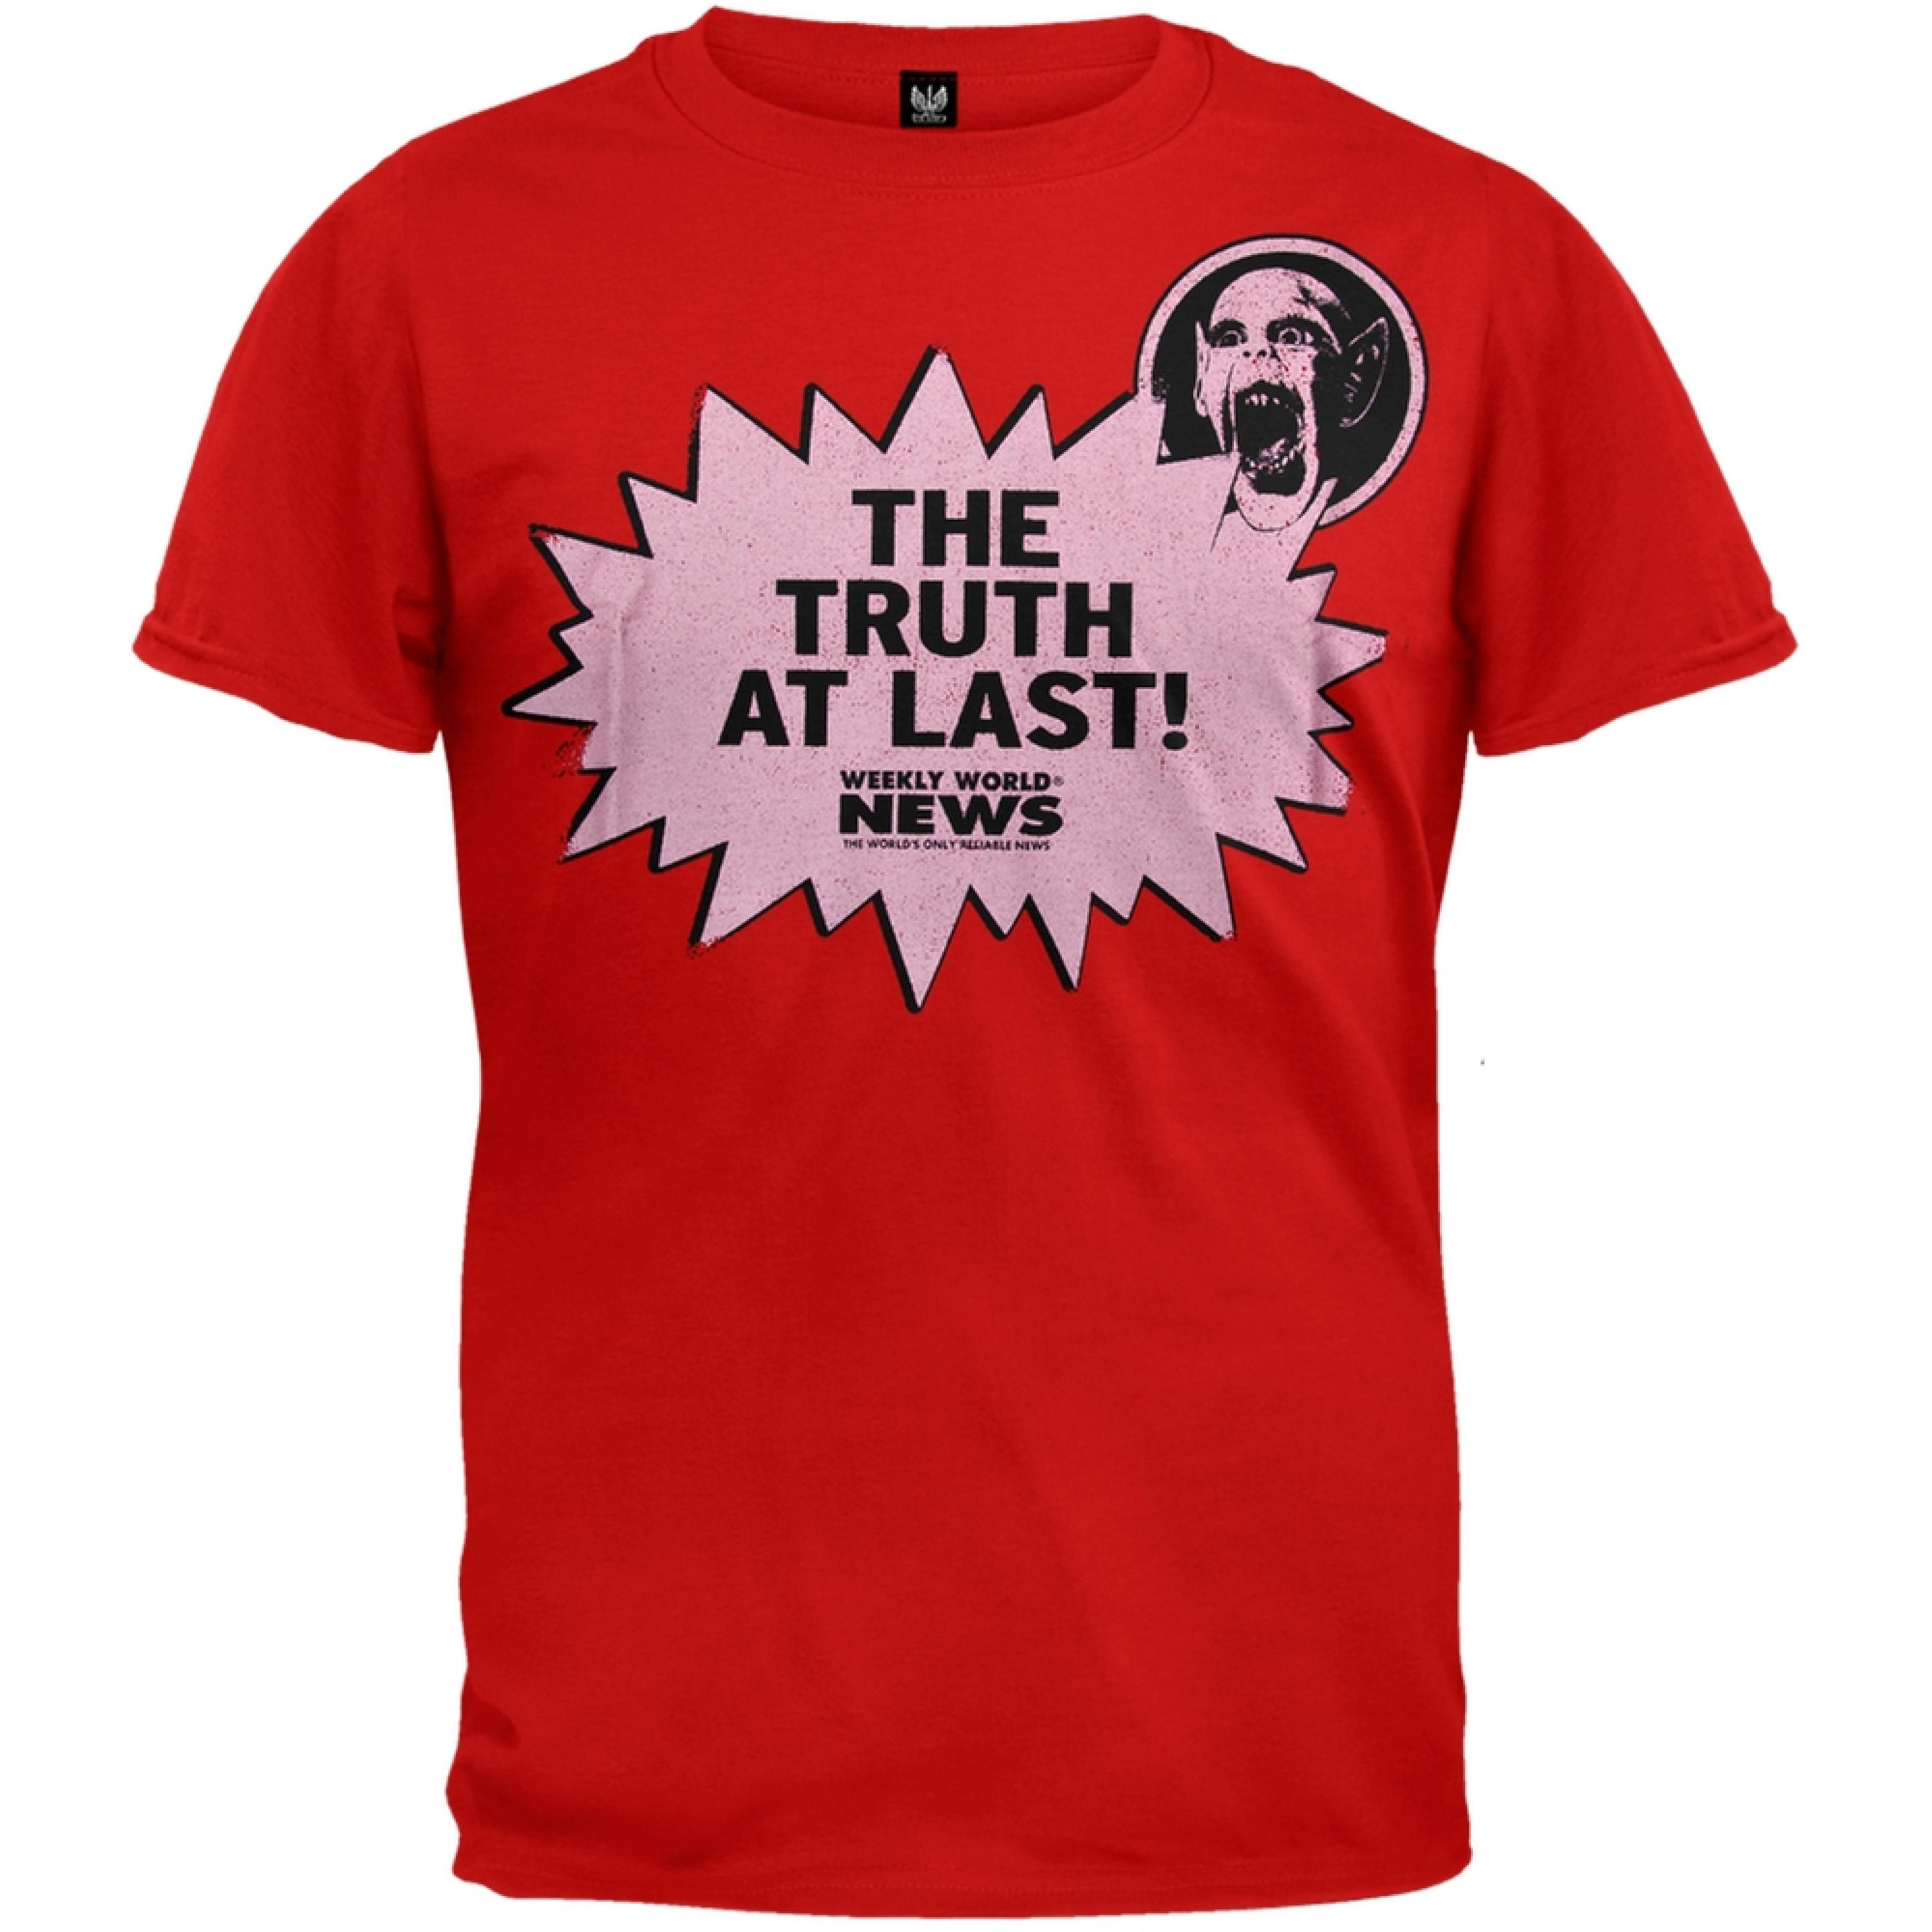 Weekly World News - Truth At Last Soft T-Shirt